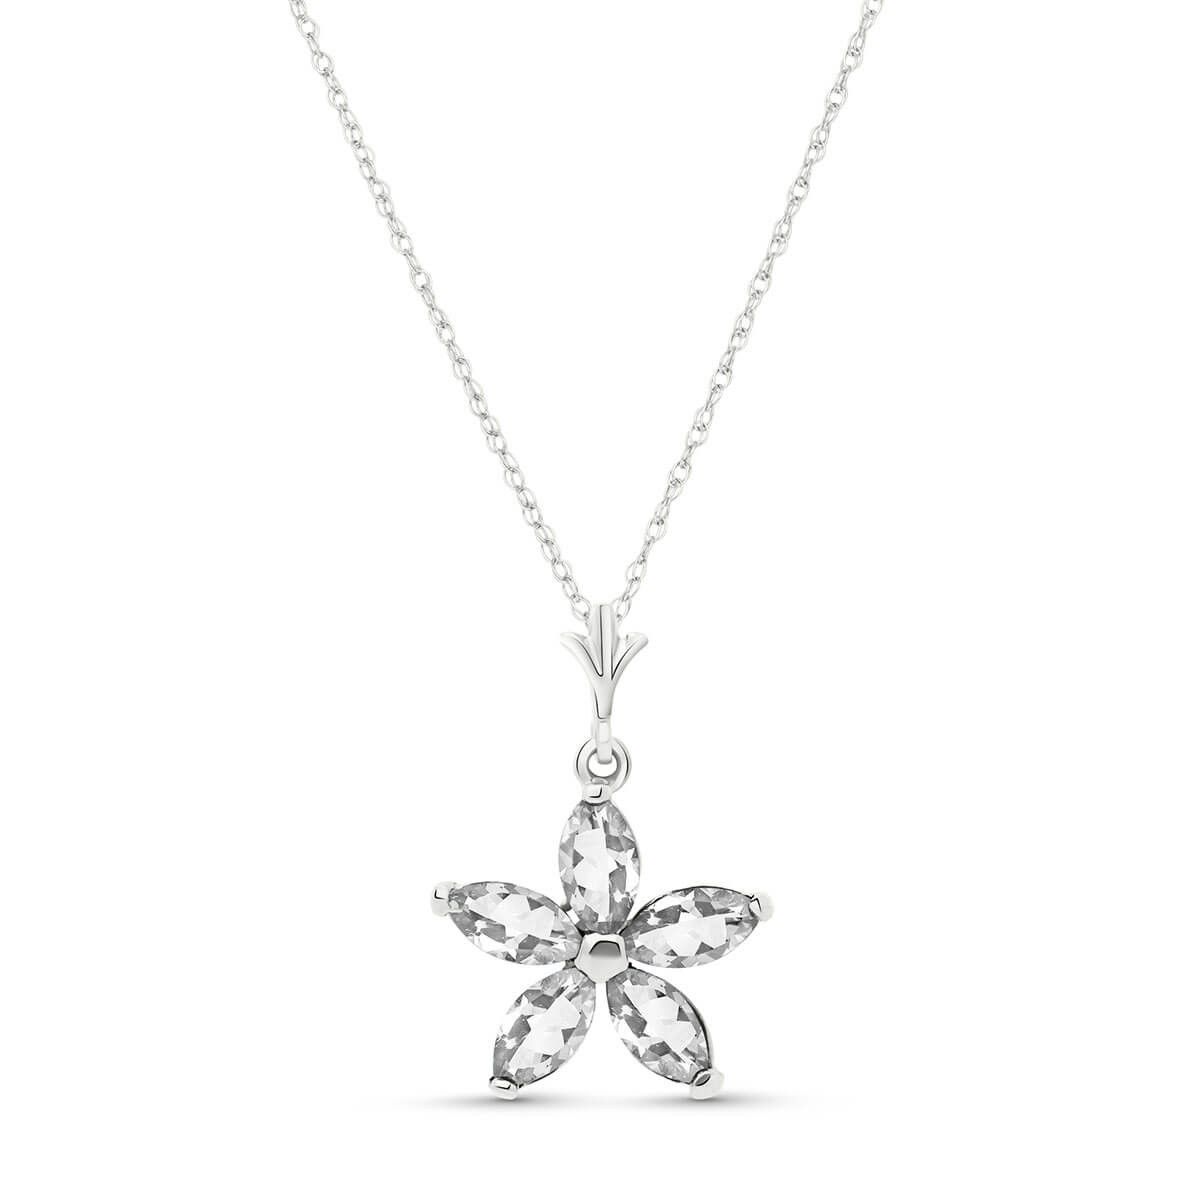 White Topaz Flower Star Pendant Necklace 1.4 ctw in 9ct White Gold